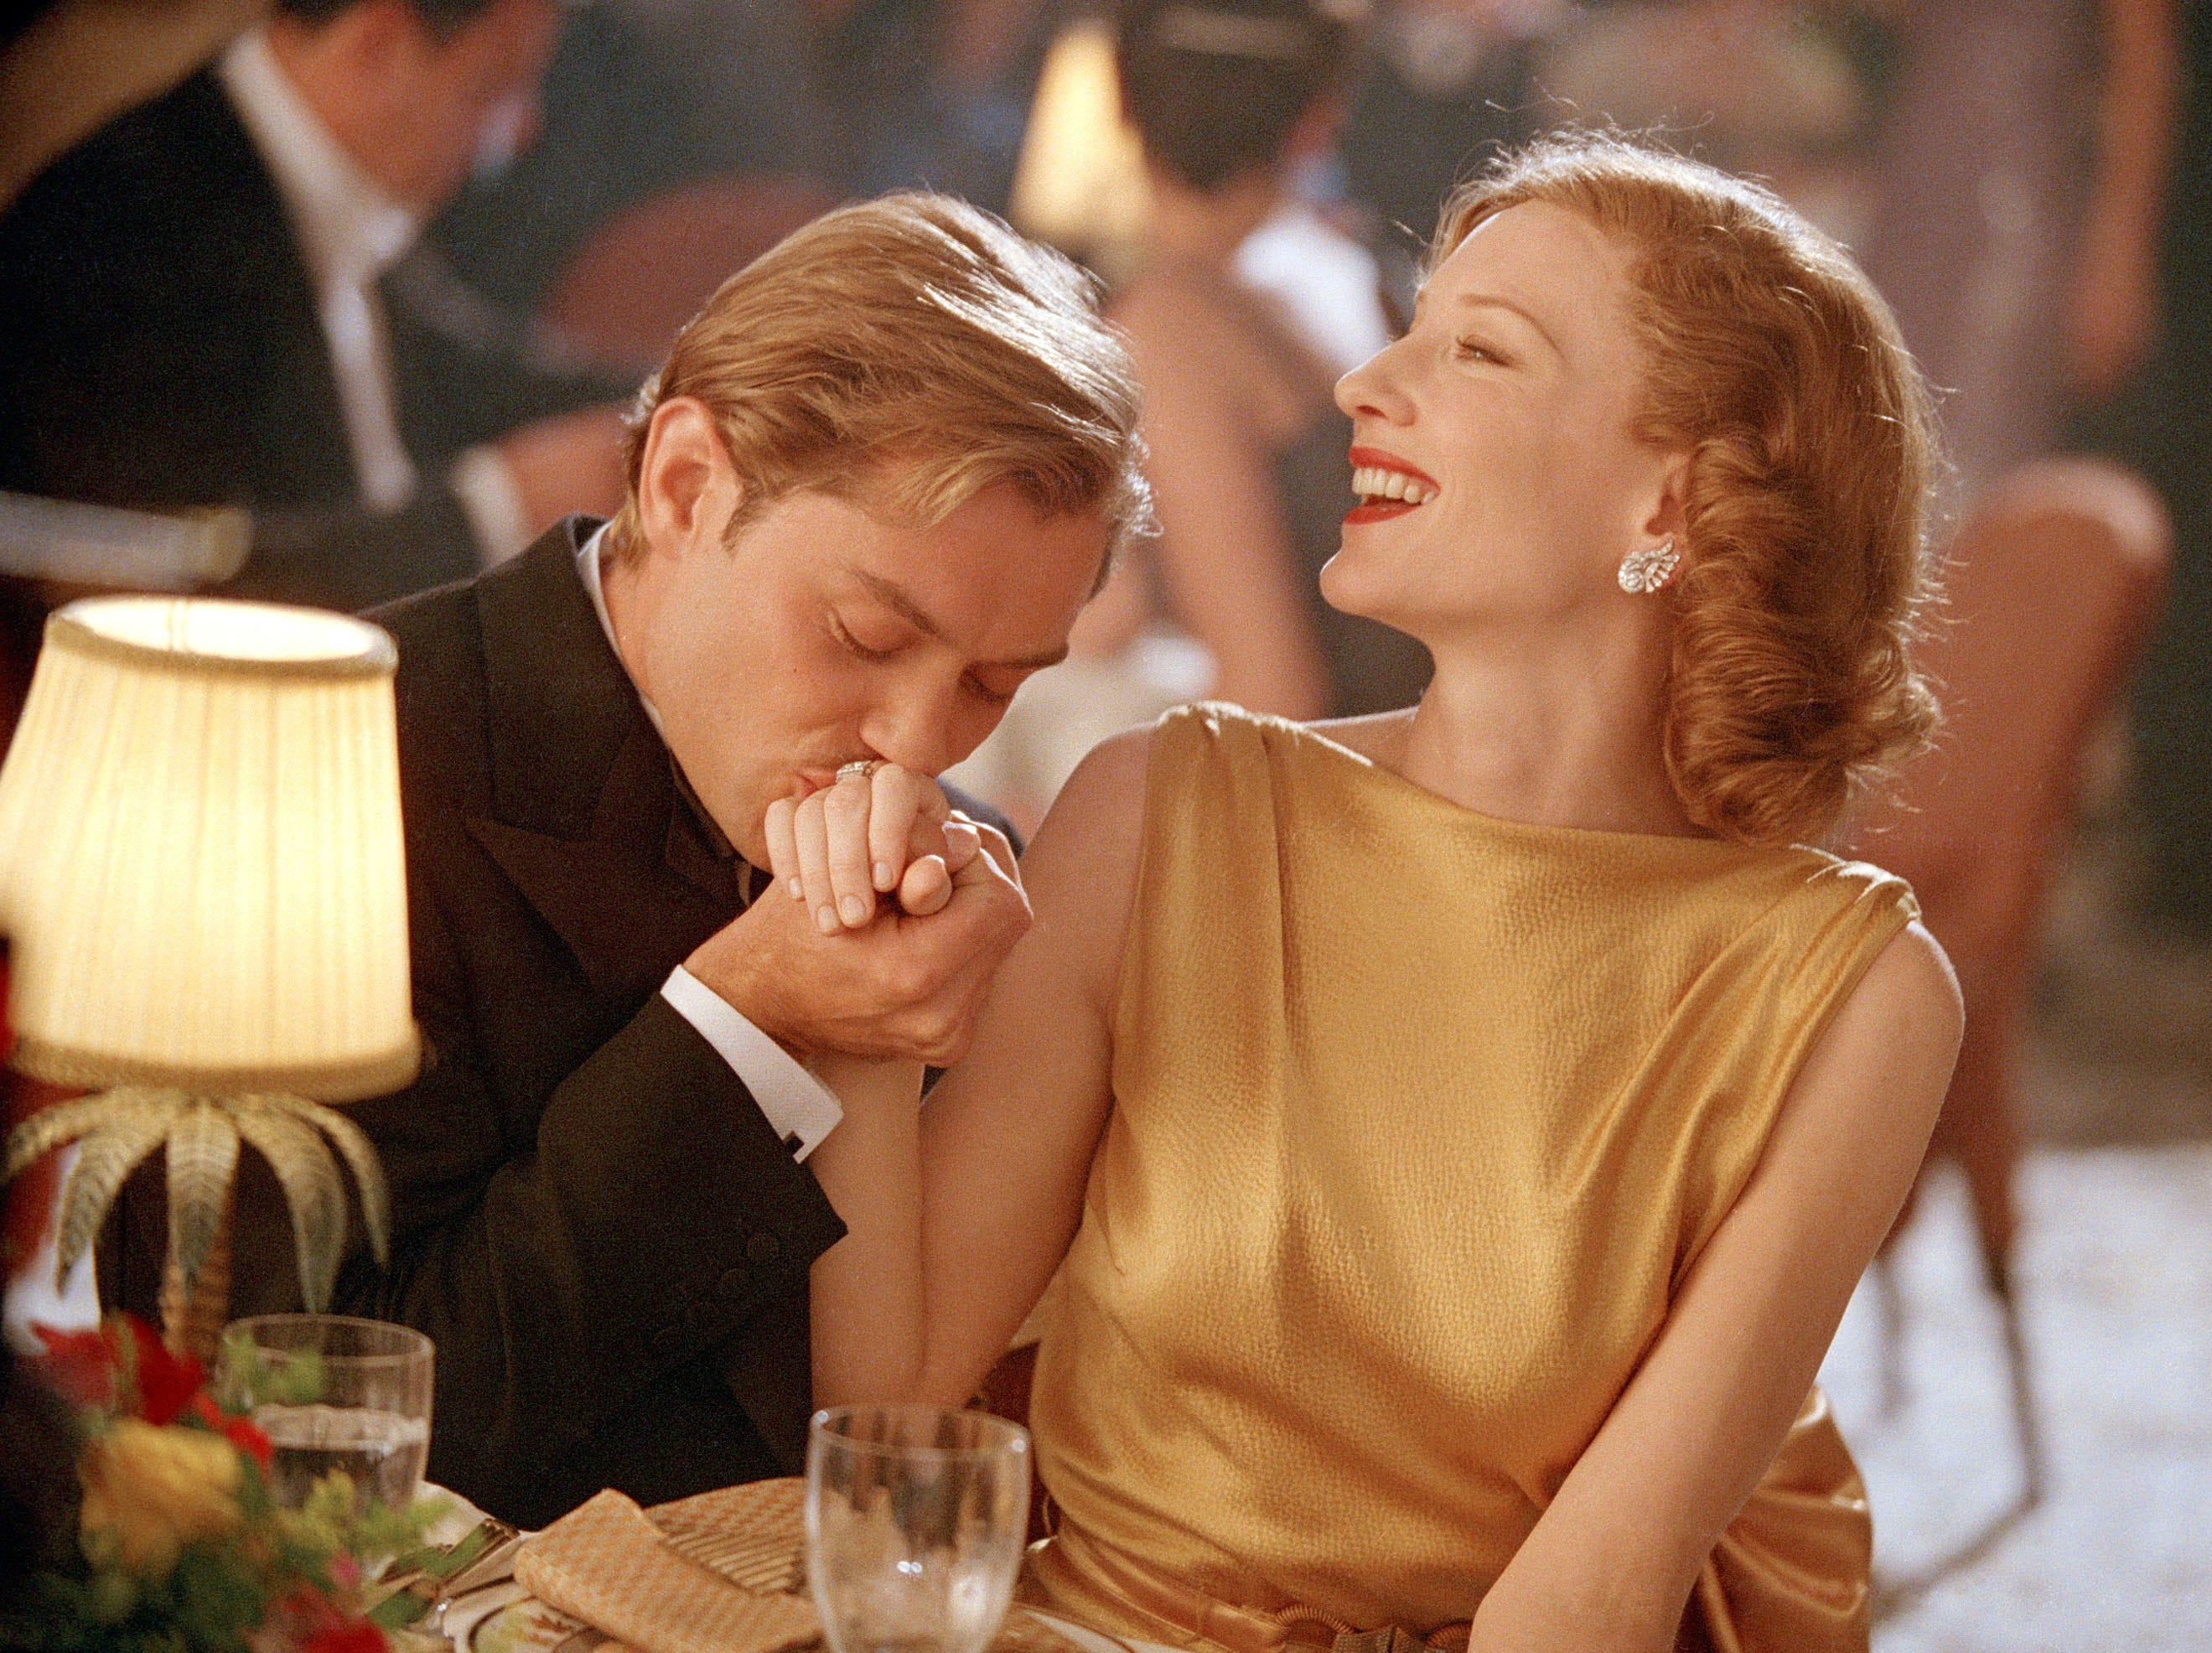 Jude Law as Errol Flynn and Cate Blanchett as Katharine Hepburn in a scene from the motion picture 'The Aviator.'